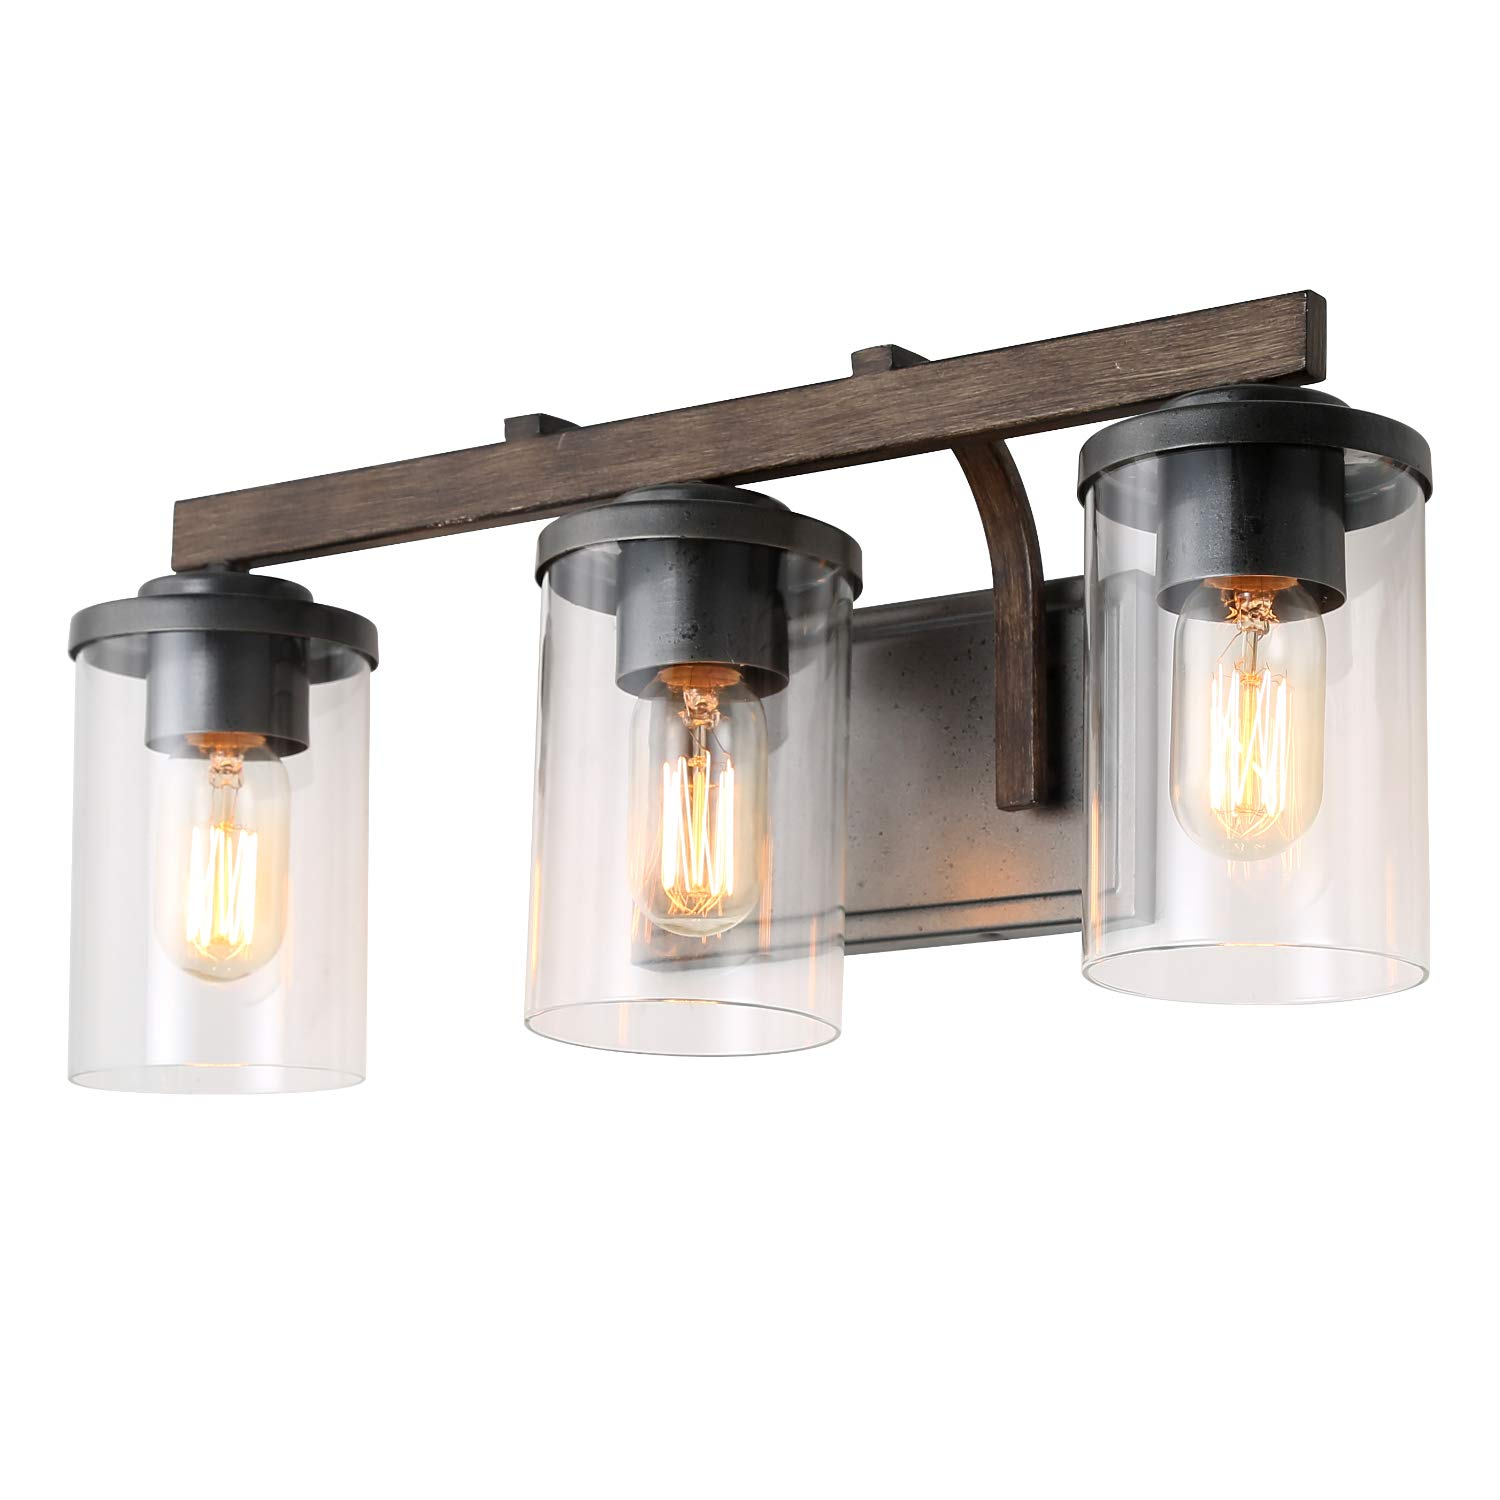 LALUZ 3-Light Rustic Bath Vanity Light Fixture Wall Sconces with Clear Glass Shade, Faux Wood